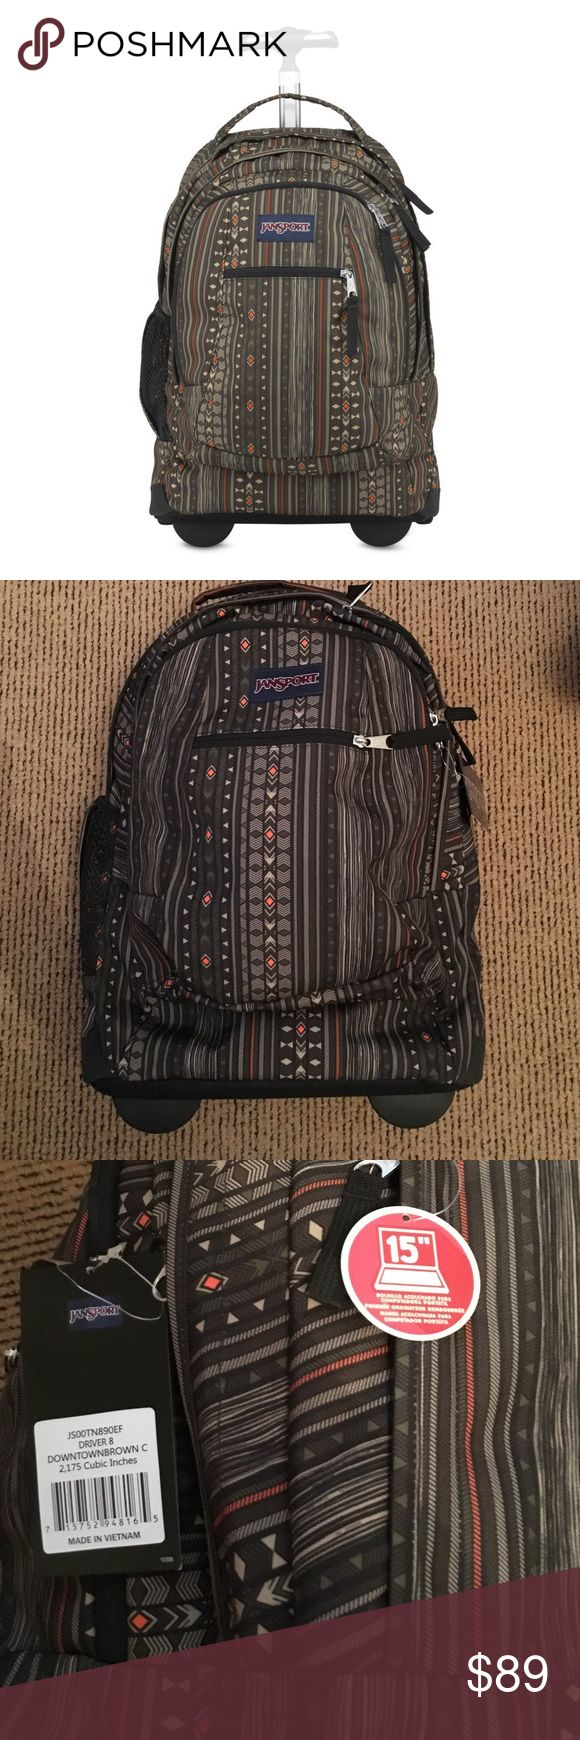 Jansport rolling backpack Patterned backpack (jansports downtown brown color) with optional back straps and wheels for multi purpose use. Very spacious and many pockets with a padded laptop sleeve for up to a 15'' laptop. Jansport Bags Backpacks